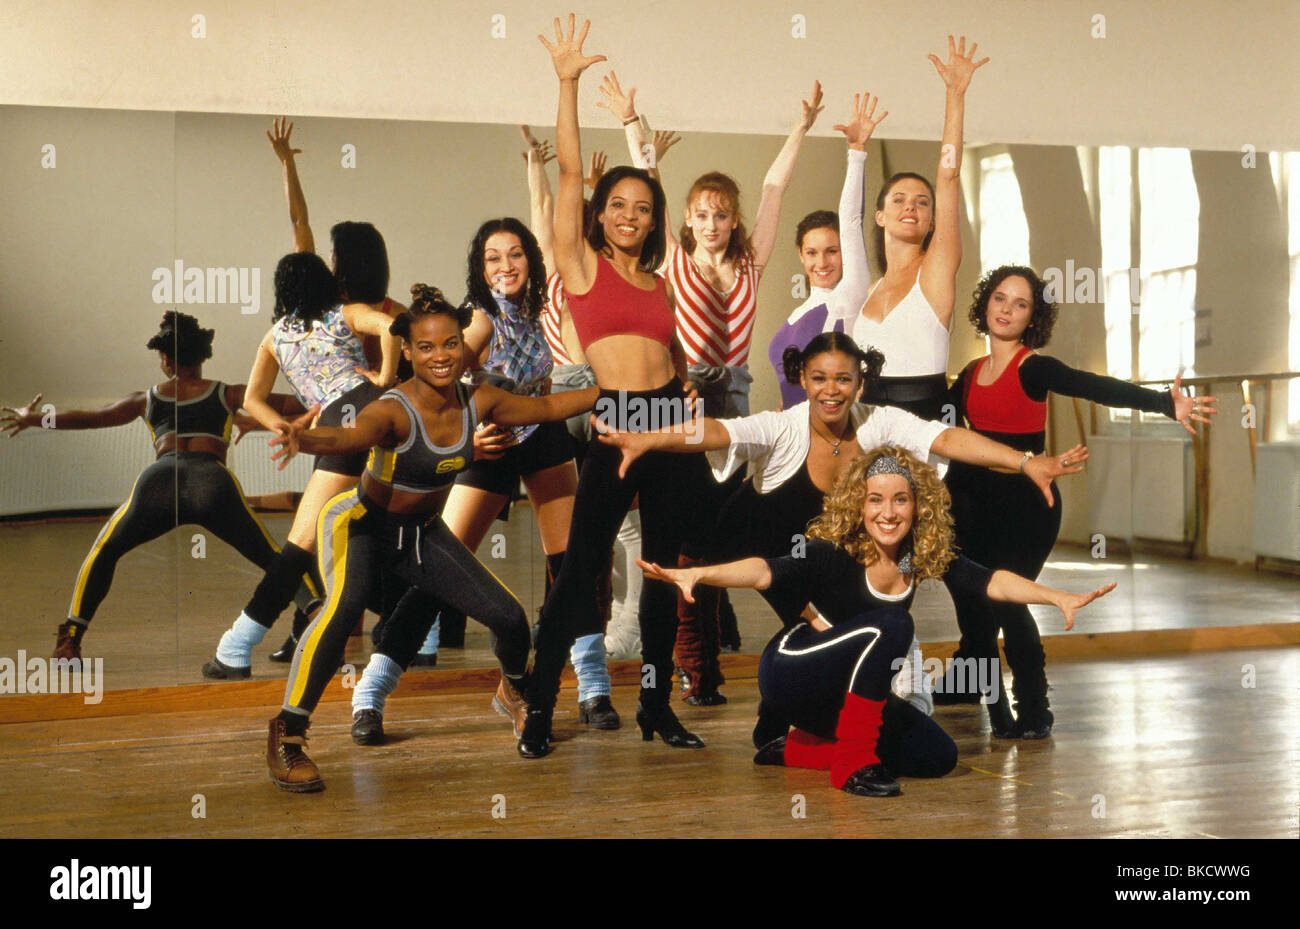 FAME - THE MUSICAL - Stock Image